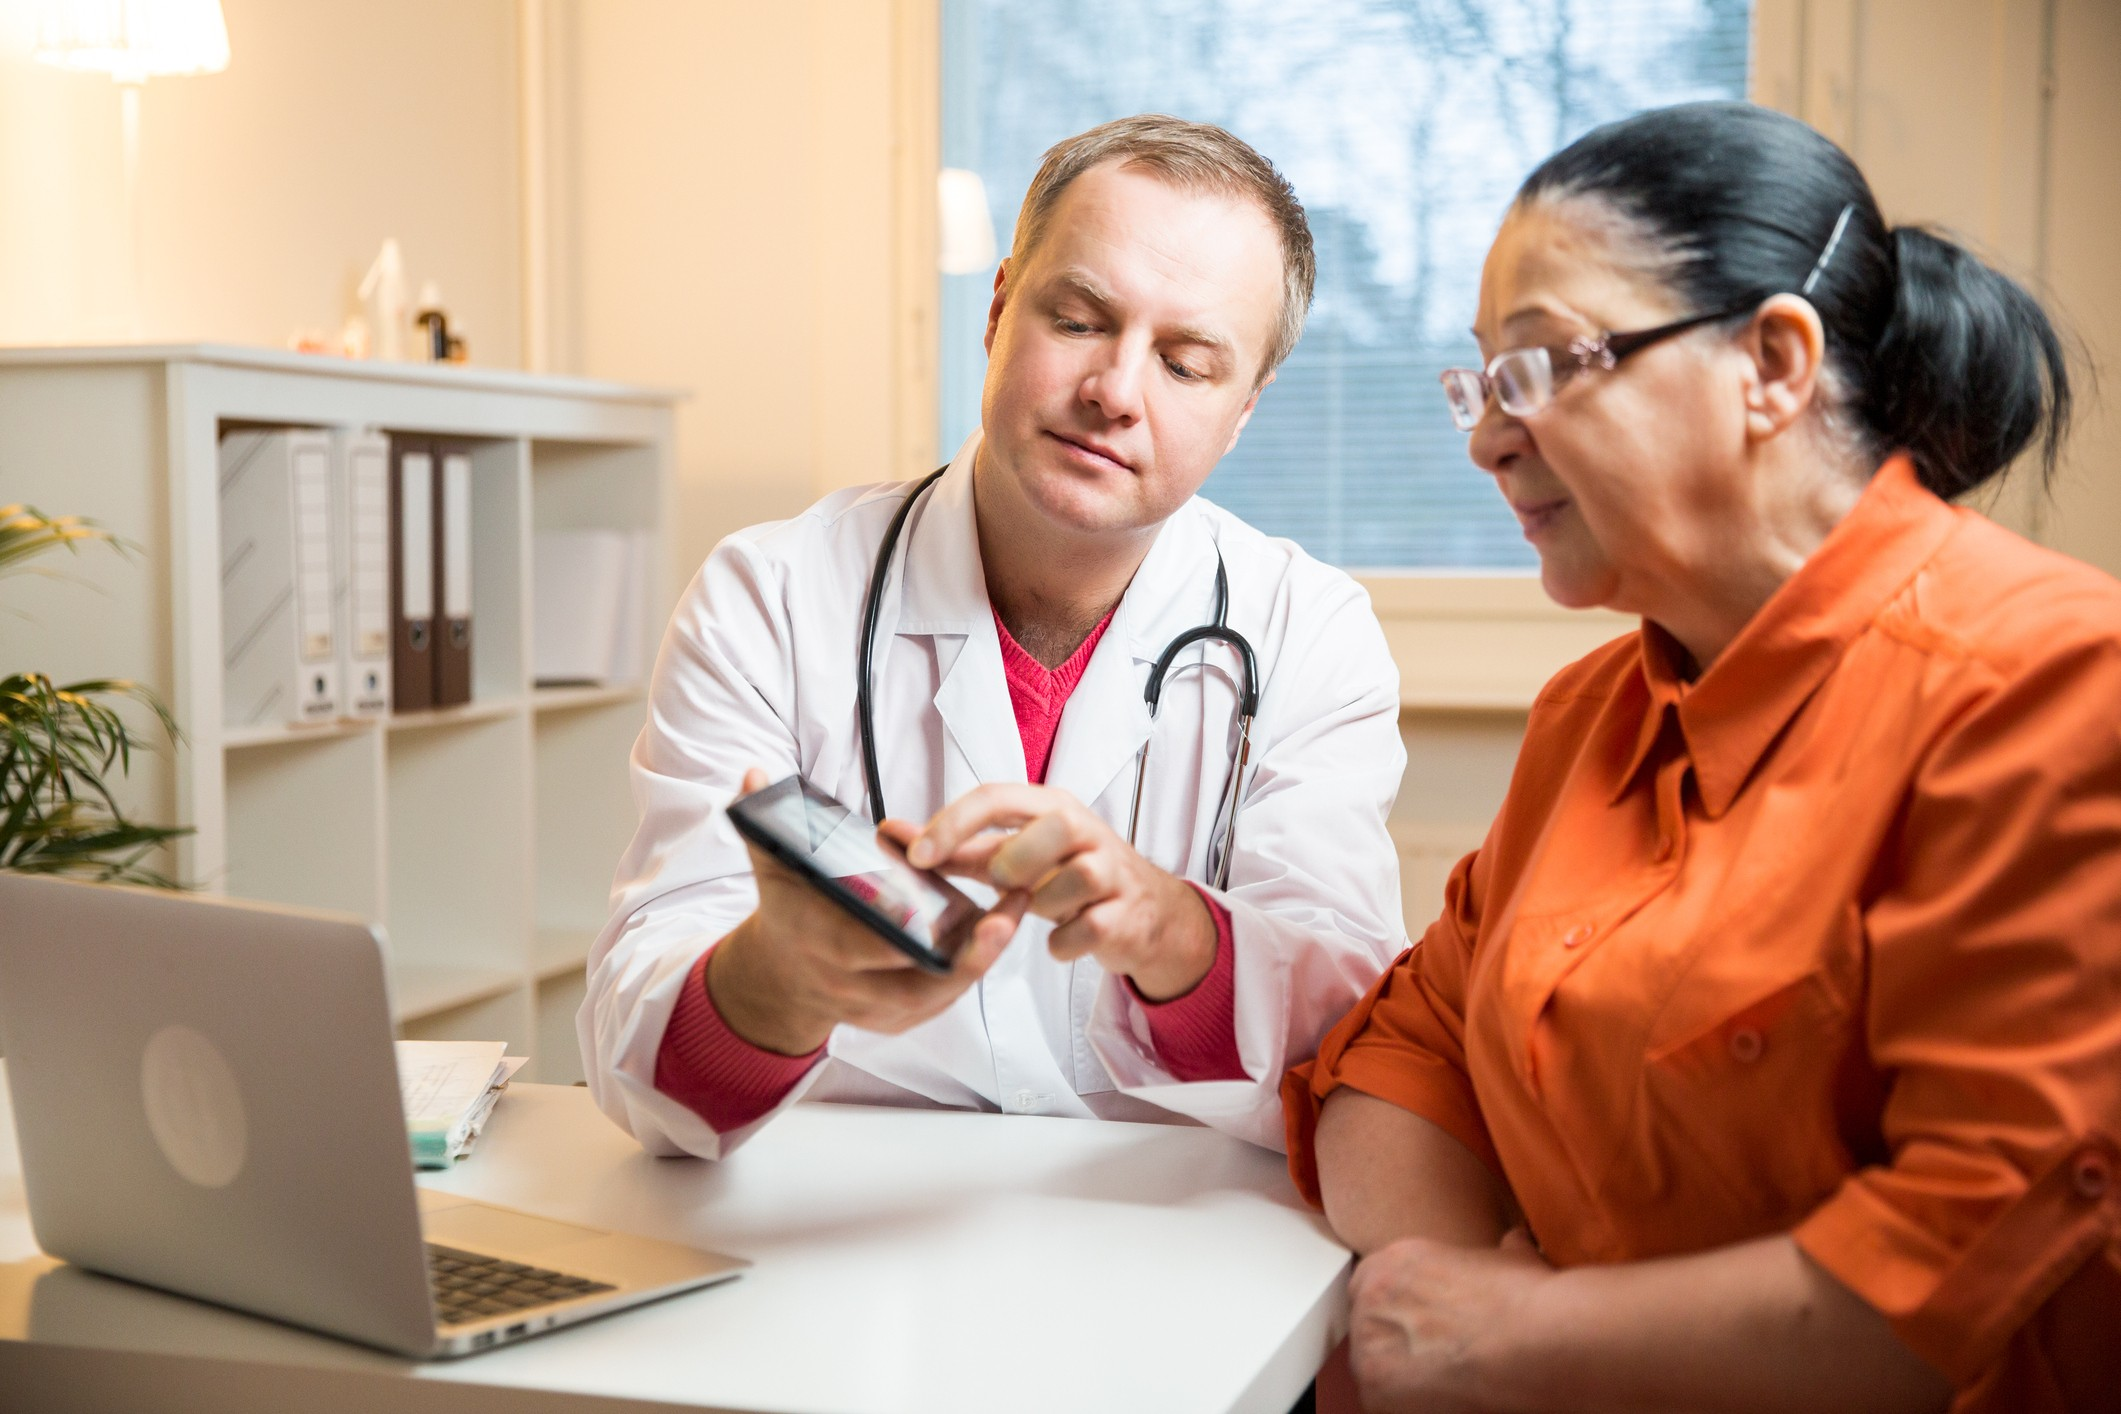 Smiling male doctor holding digital tablet, showing test results to patient in hospital. X-ray images on screen. Sick senior woman having a doctor appointment. Medical consultation.